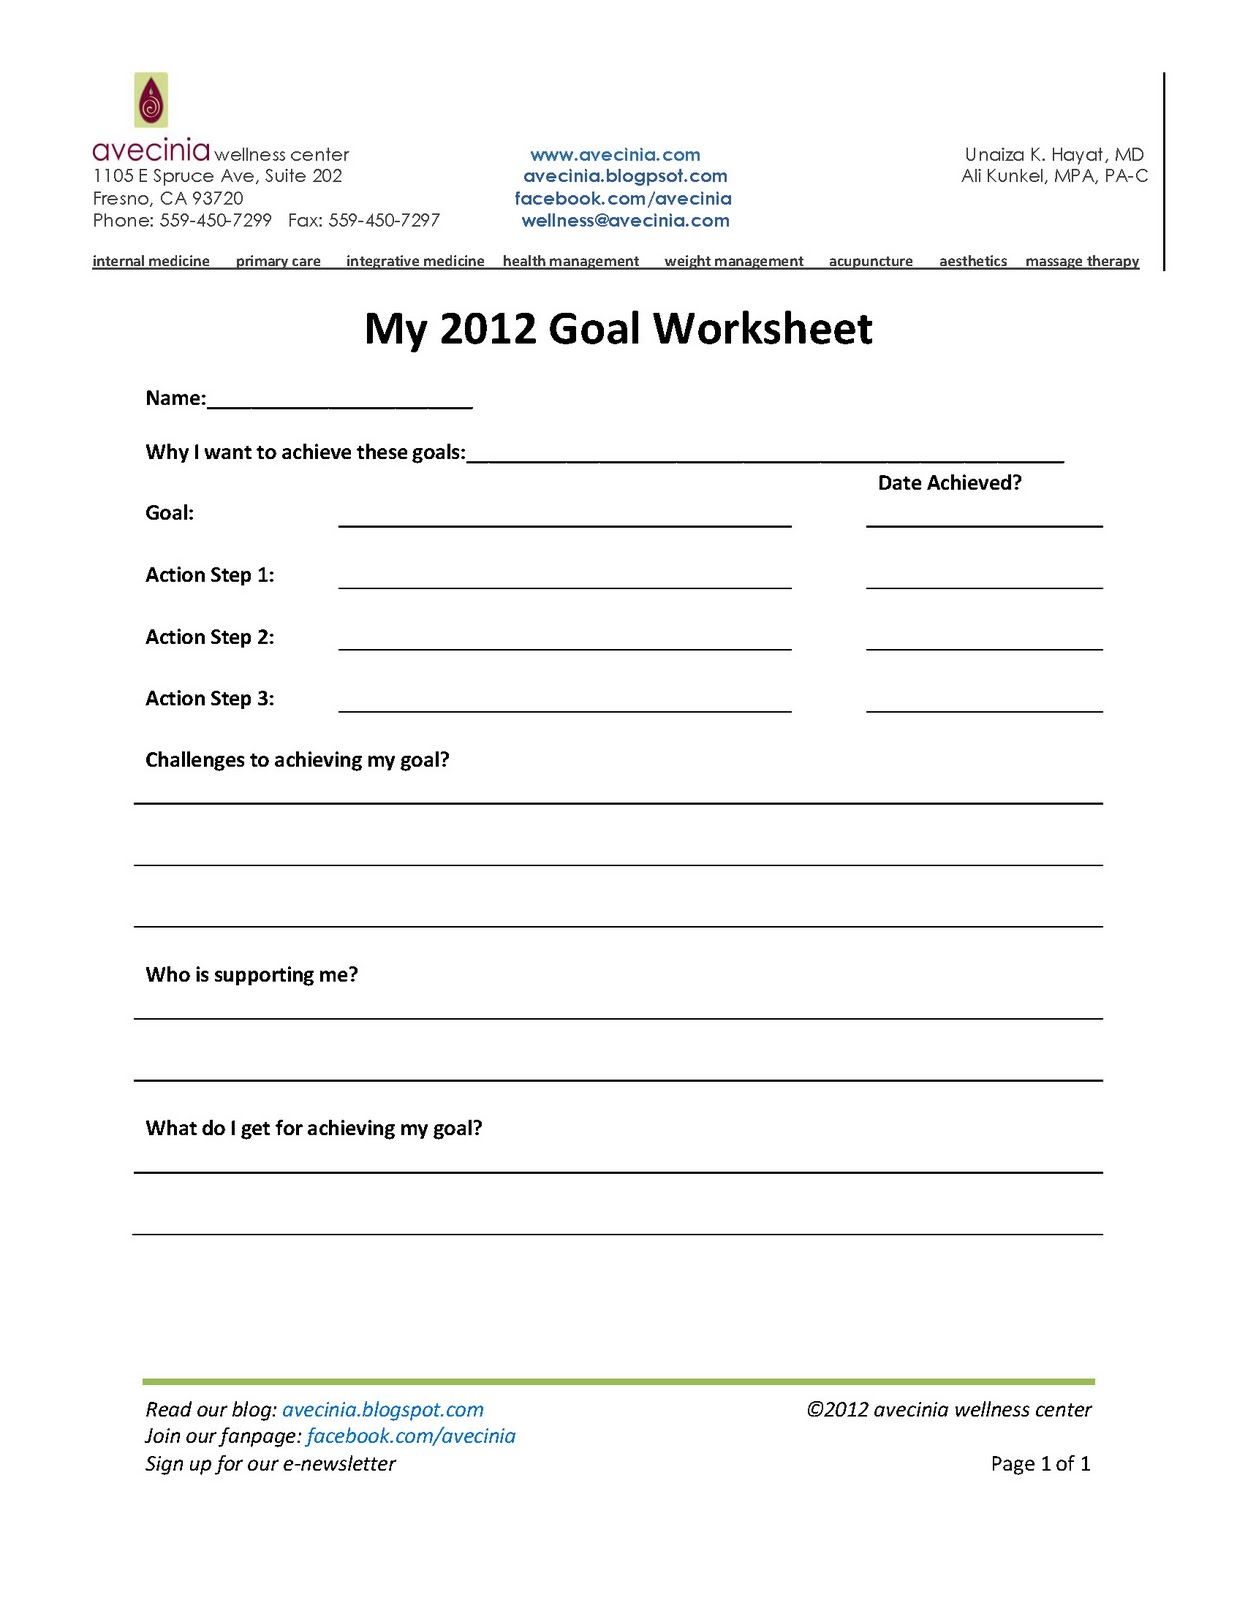 Worksheet Health And Wellness Worksheets avecinia wellness center january 2012 for daily updates on news information and more health care join centers facebook page comavecinia and